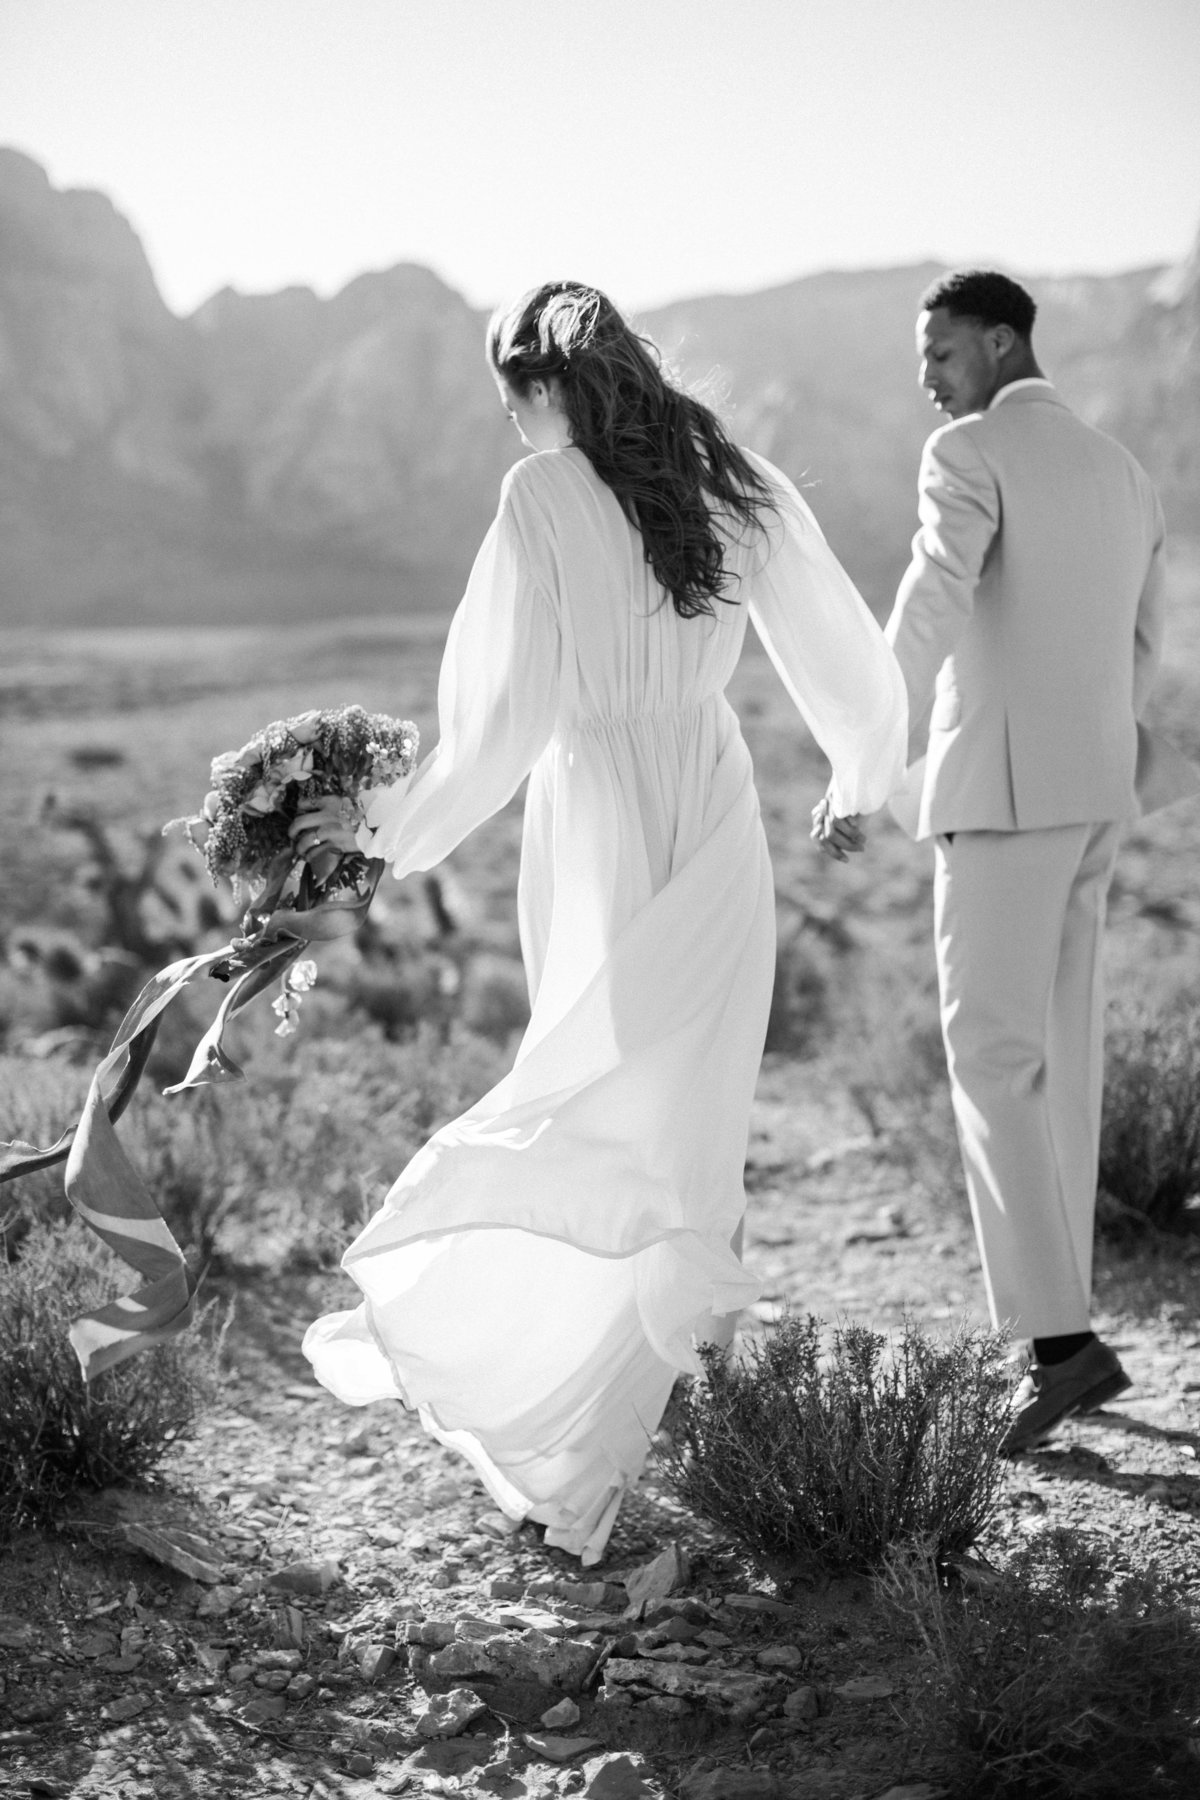 Babsie-Ly-Photography-Red-Rock-Canyon-Las-Vegas-Wedding-Elopement-Fine-Art-Film-domenica-domenica-robe-025